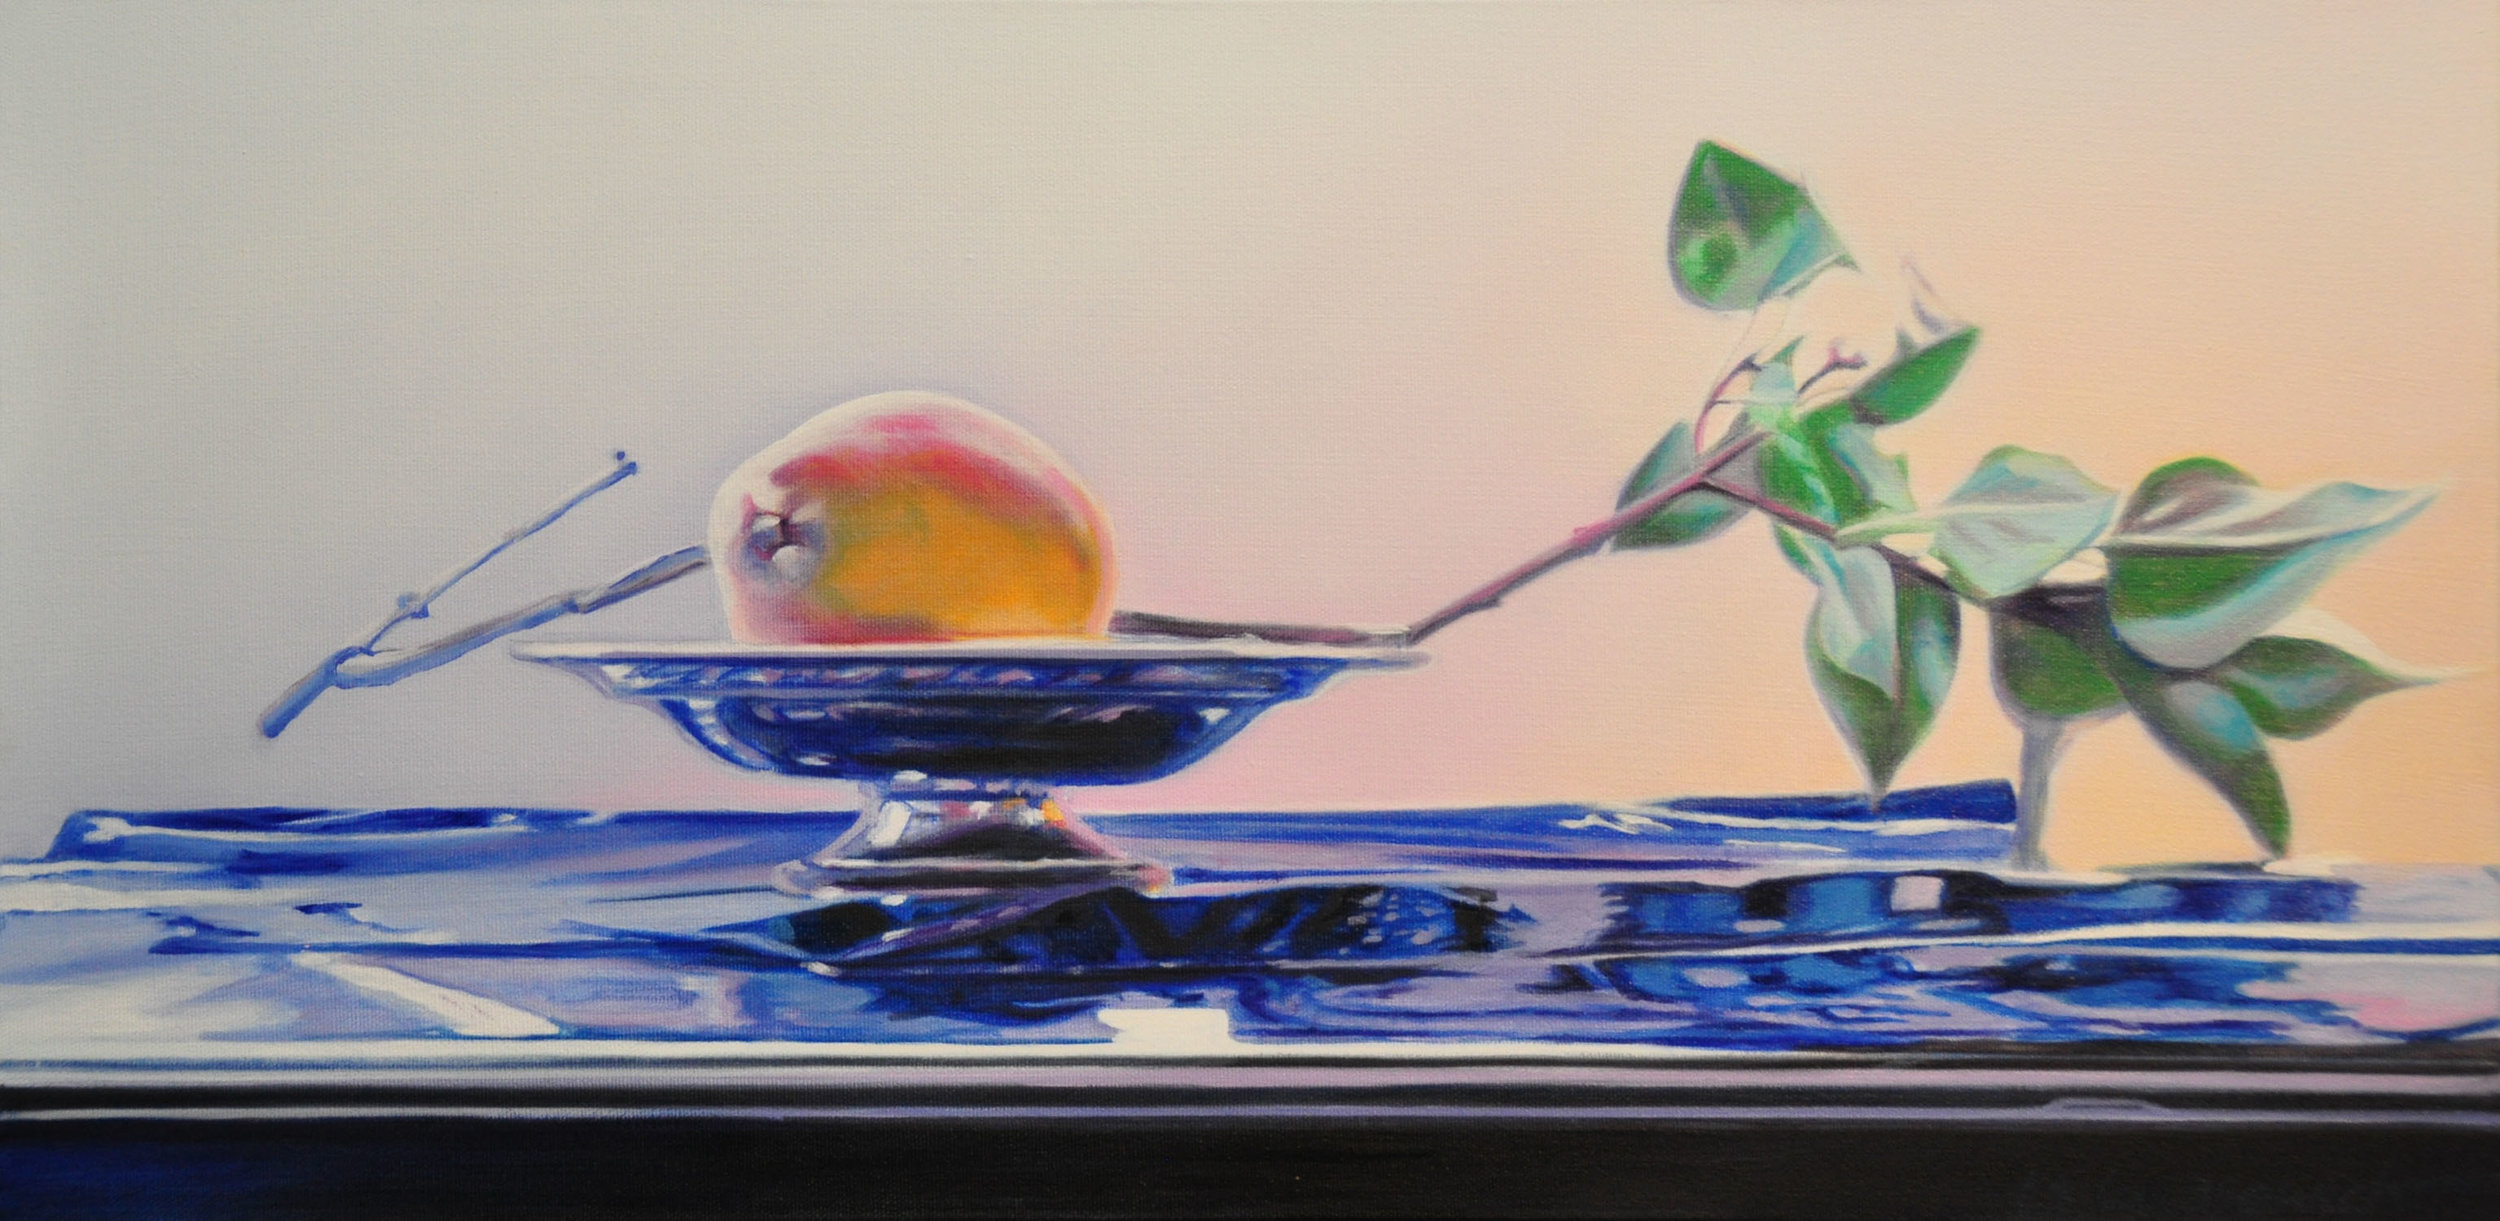 Lilac Branch, oil & alkyd on canvas, 12 x 24 in.